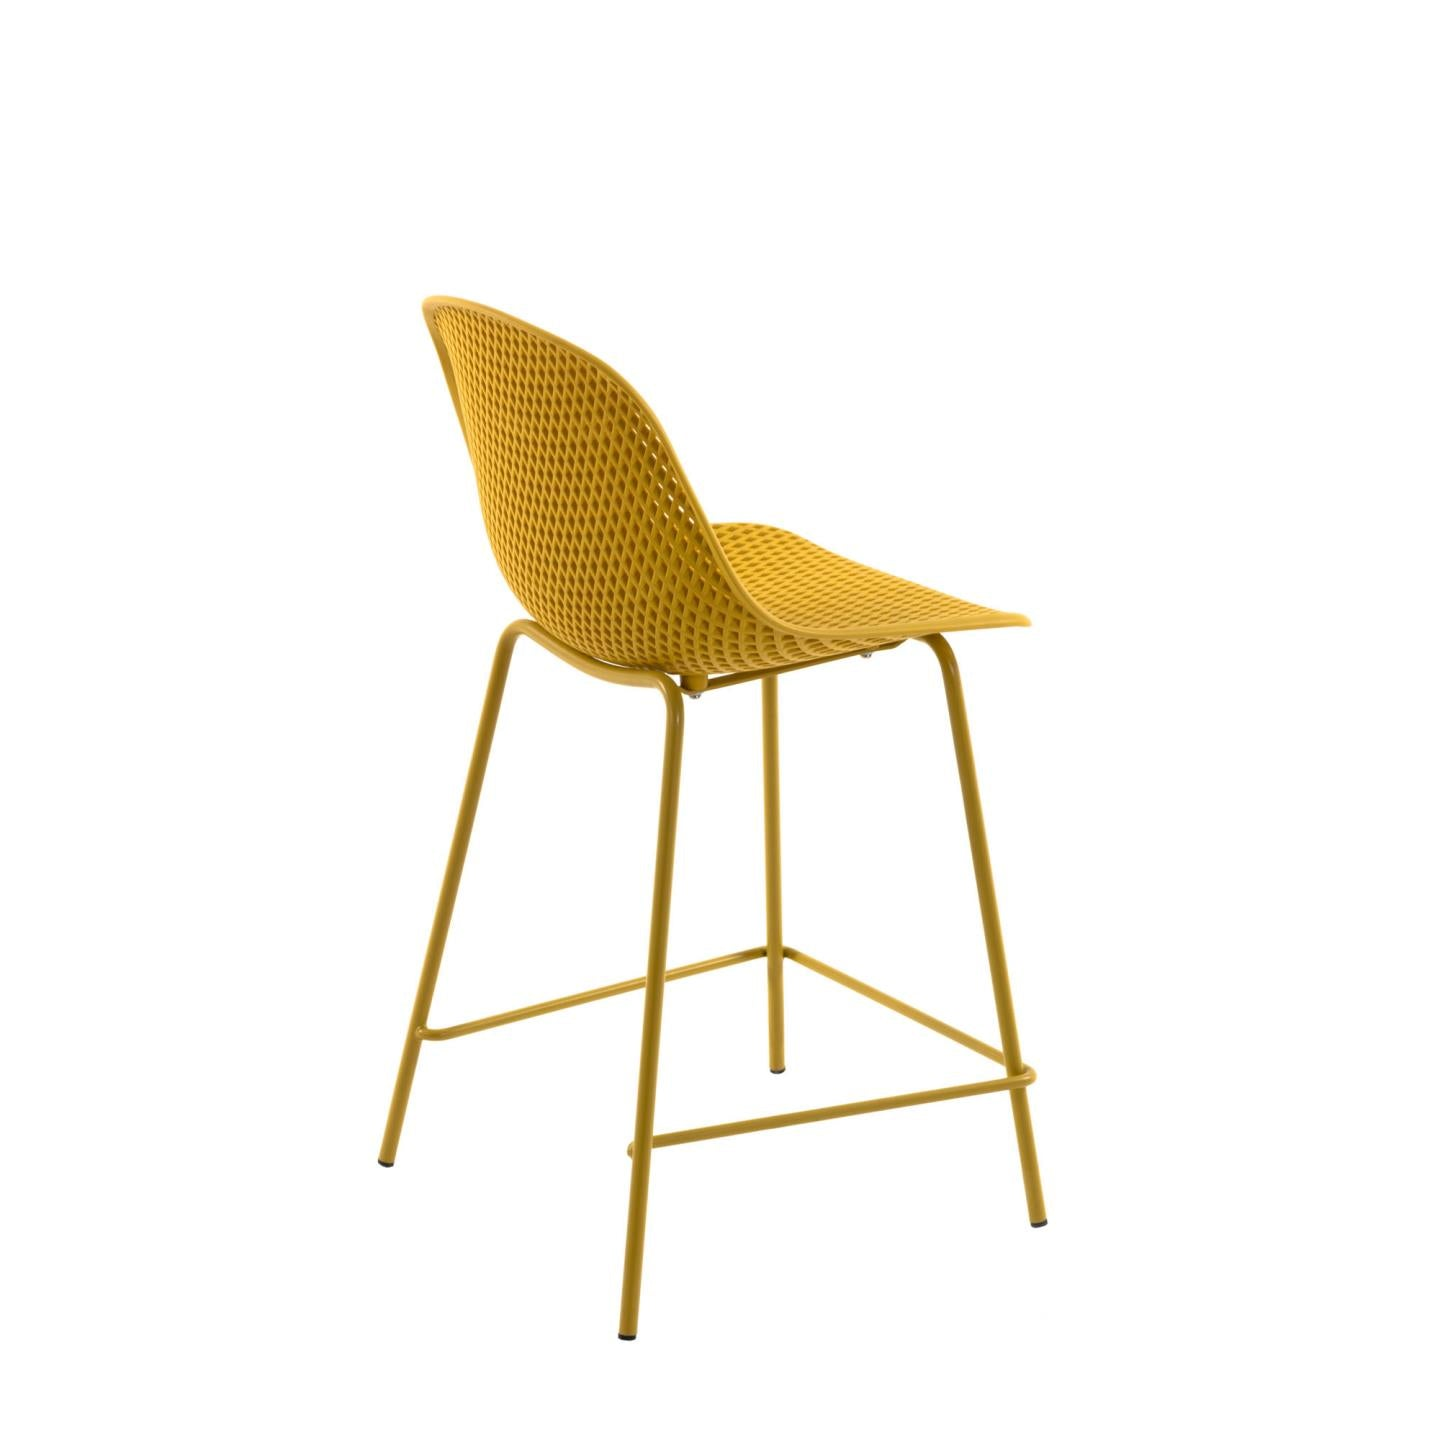 Luino Outdoor Stool Yellow Height 65 cm, Barstool - Home-Buy Interiors